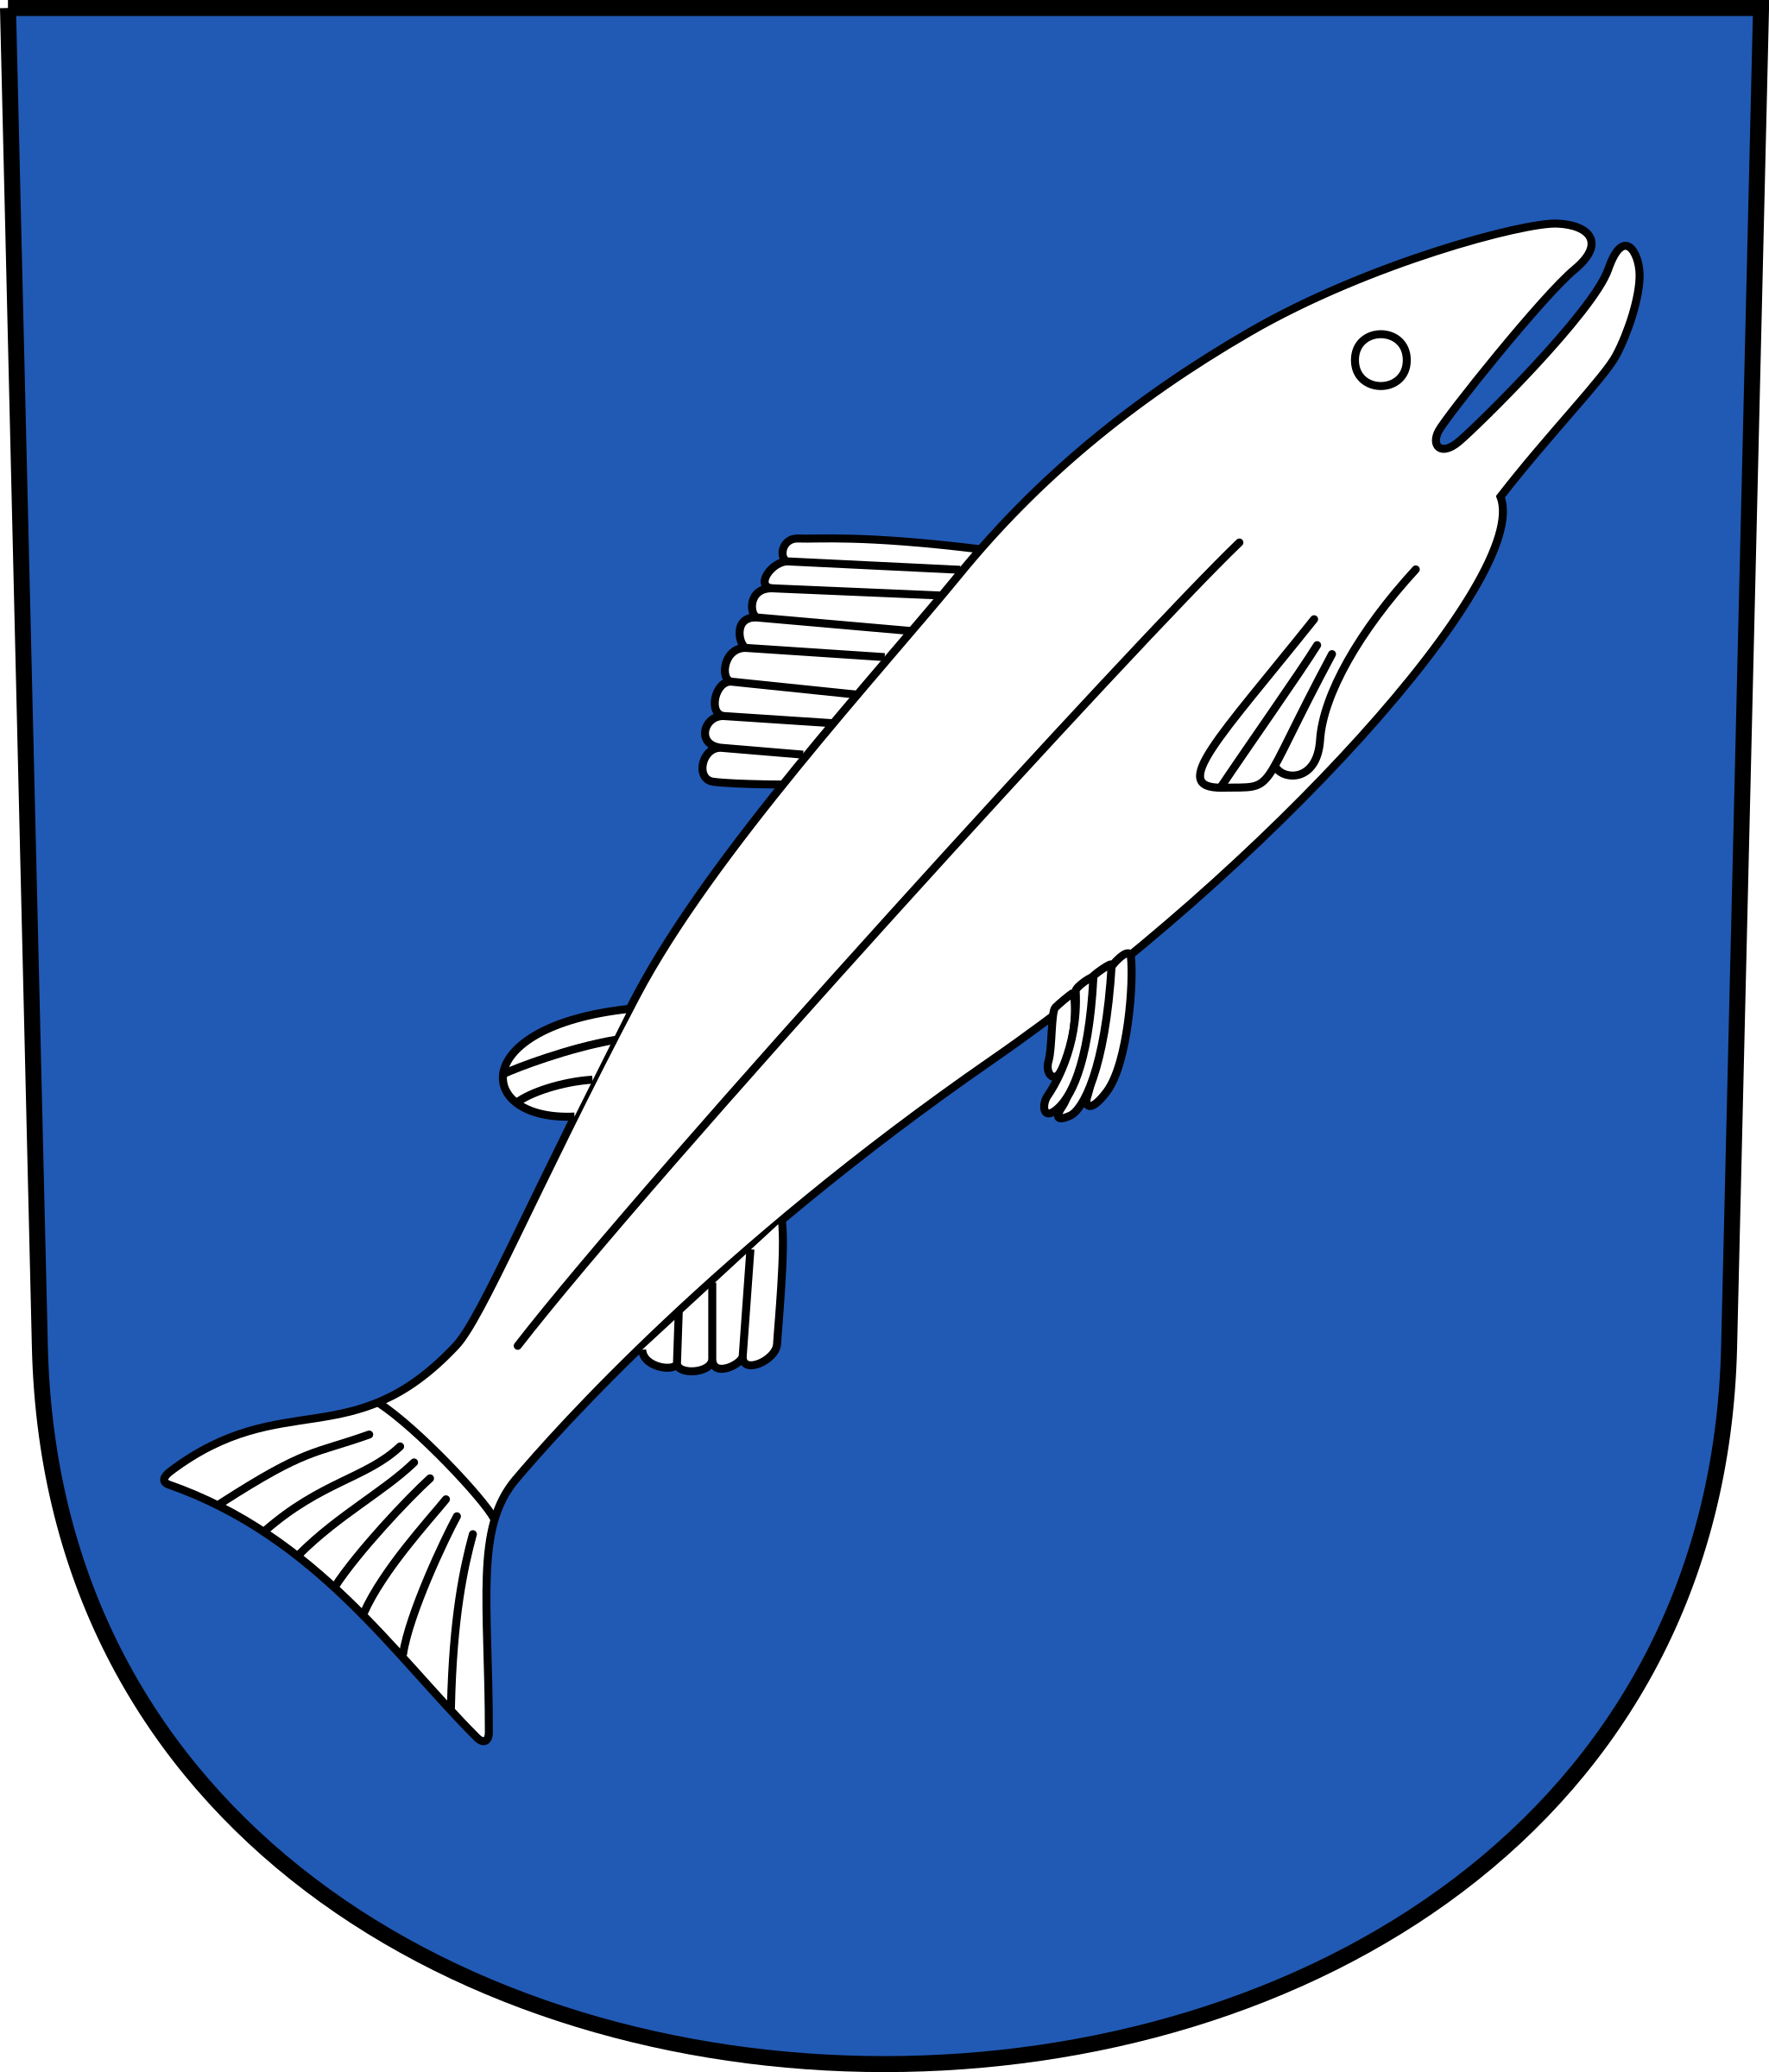 Rheinau - Coat of arms by wipp